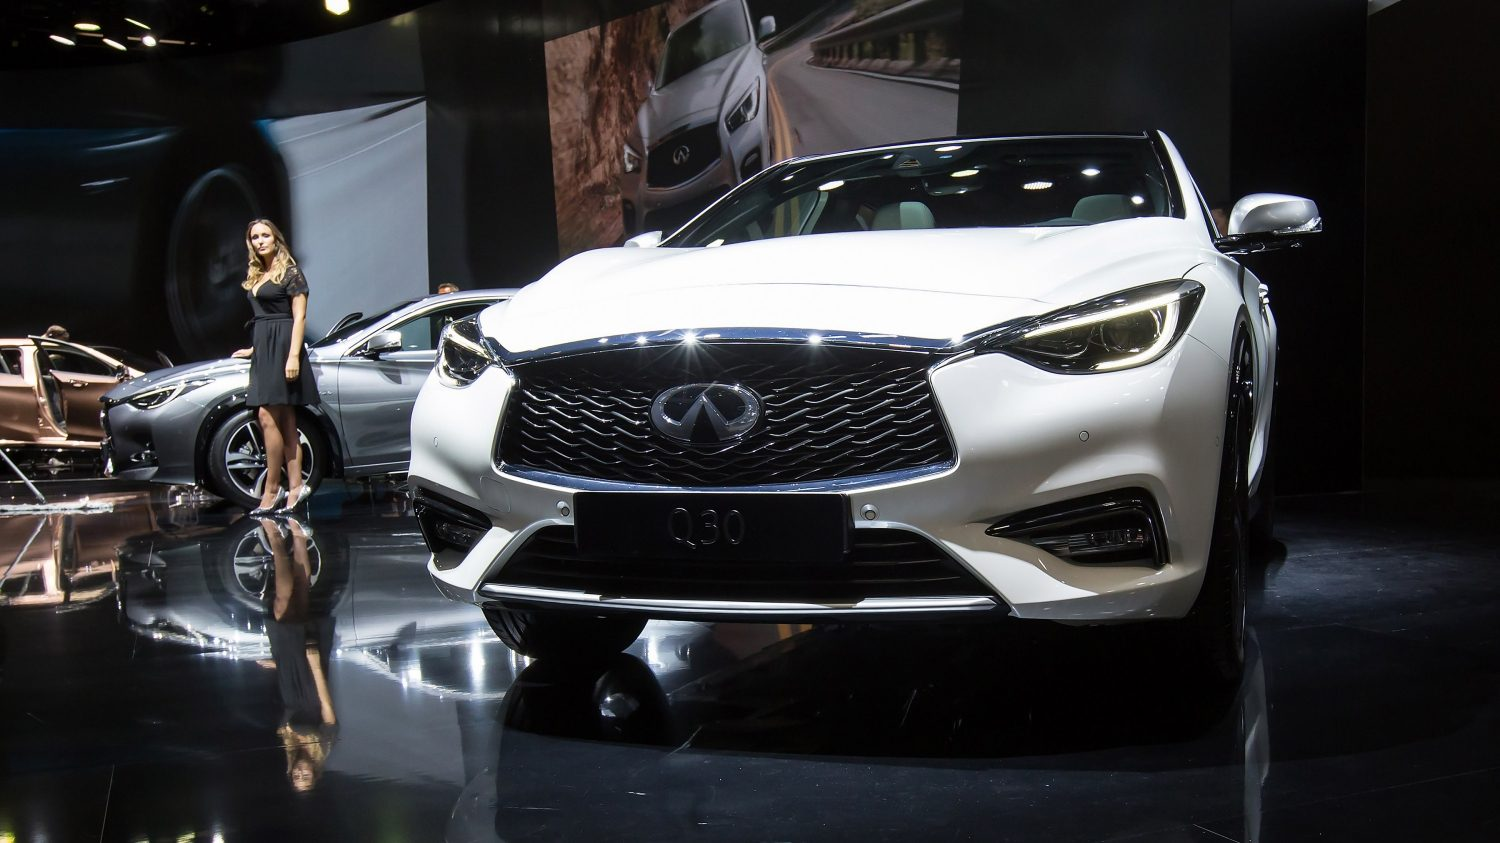 Infiniti Q30 - Exterior Design - Full Profile